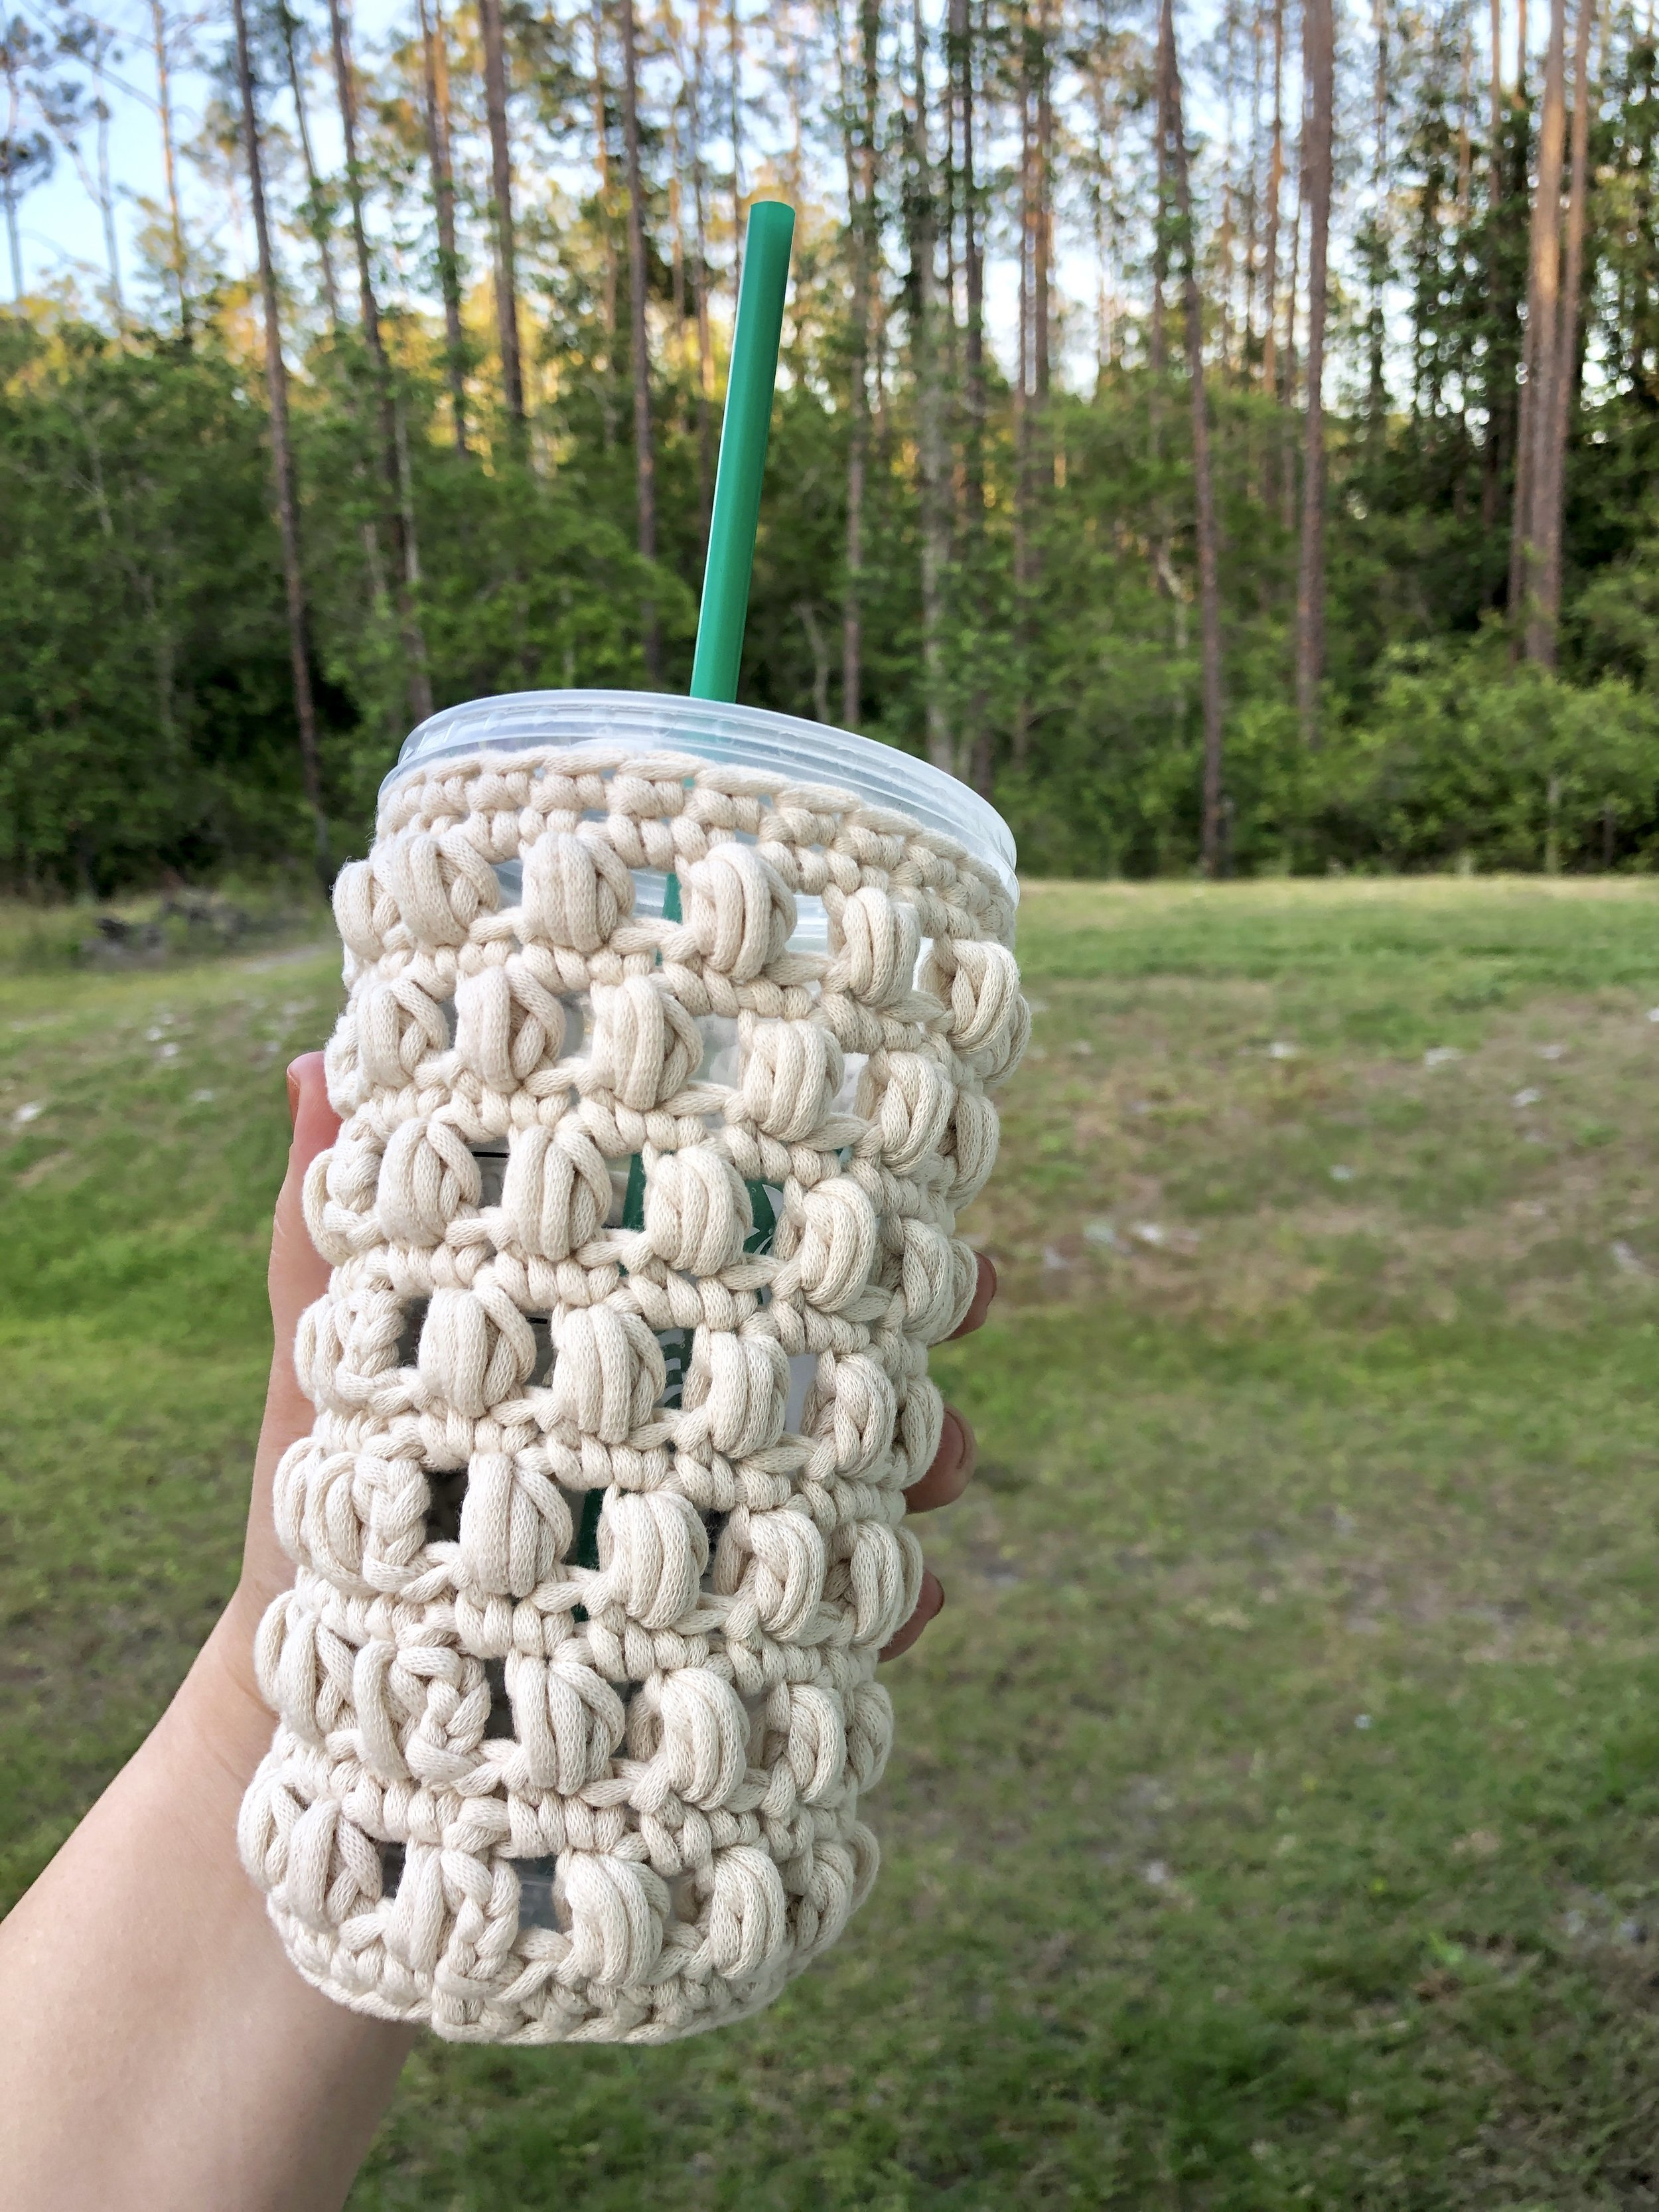 White Bluffs Cozy Starbucks Iced Coffee Cup - Crochet Pattern - The Roving Nomad